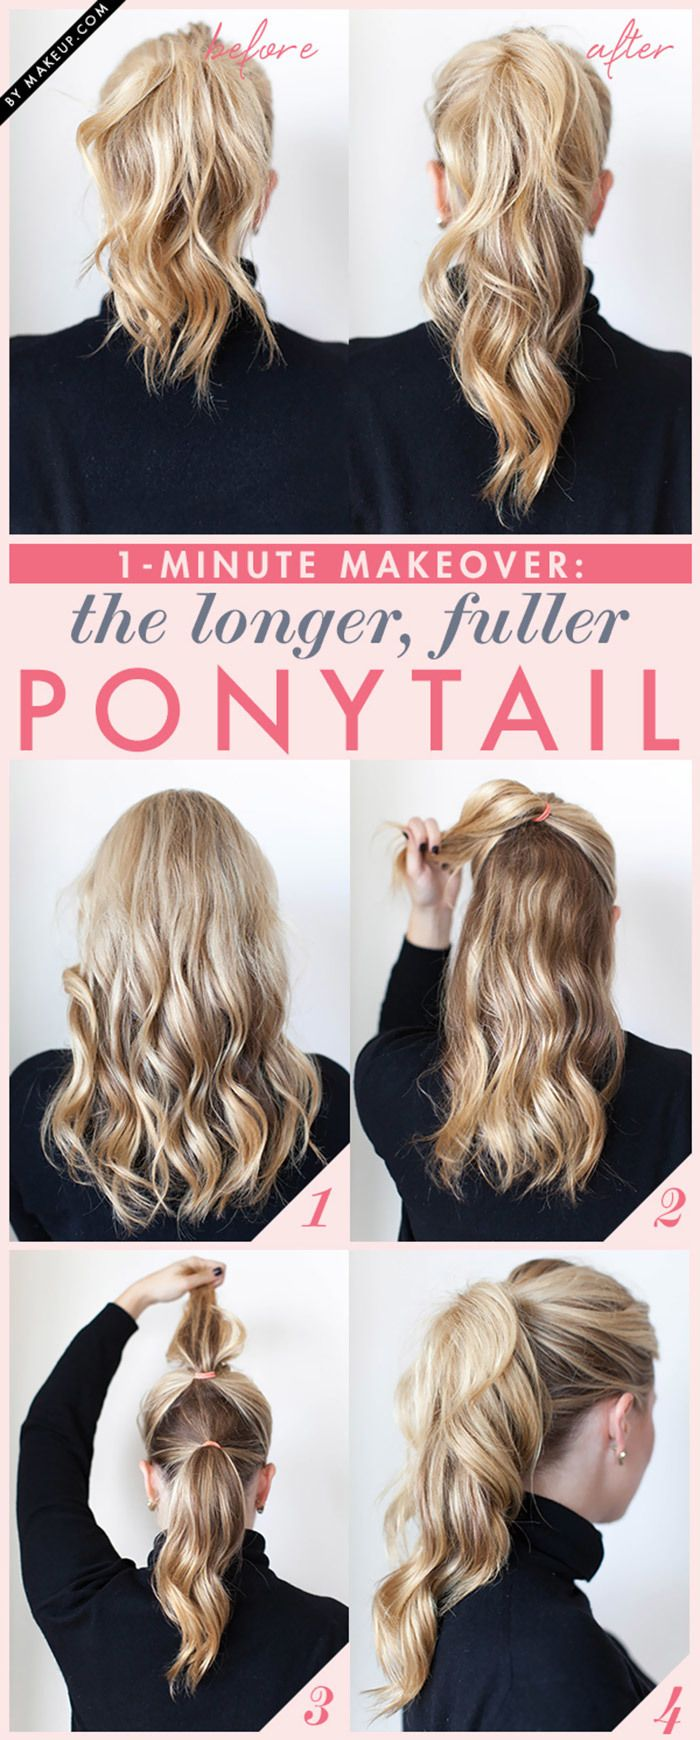 25 Hairstyling Hacks Every Girl Should Know Hairstyles For Women